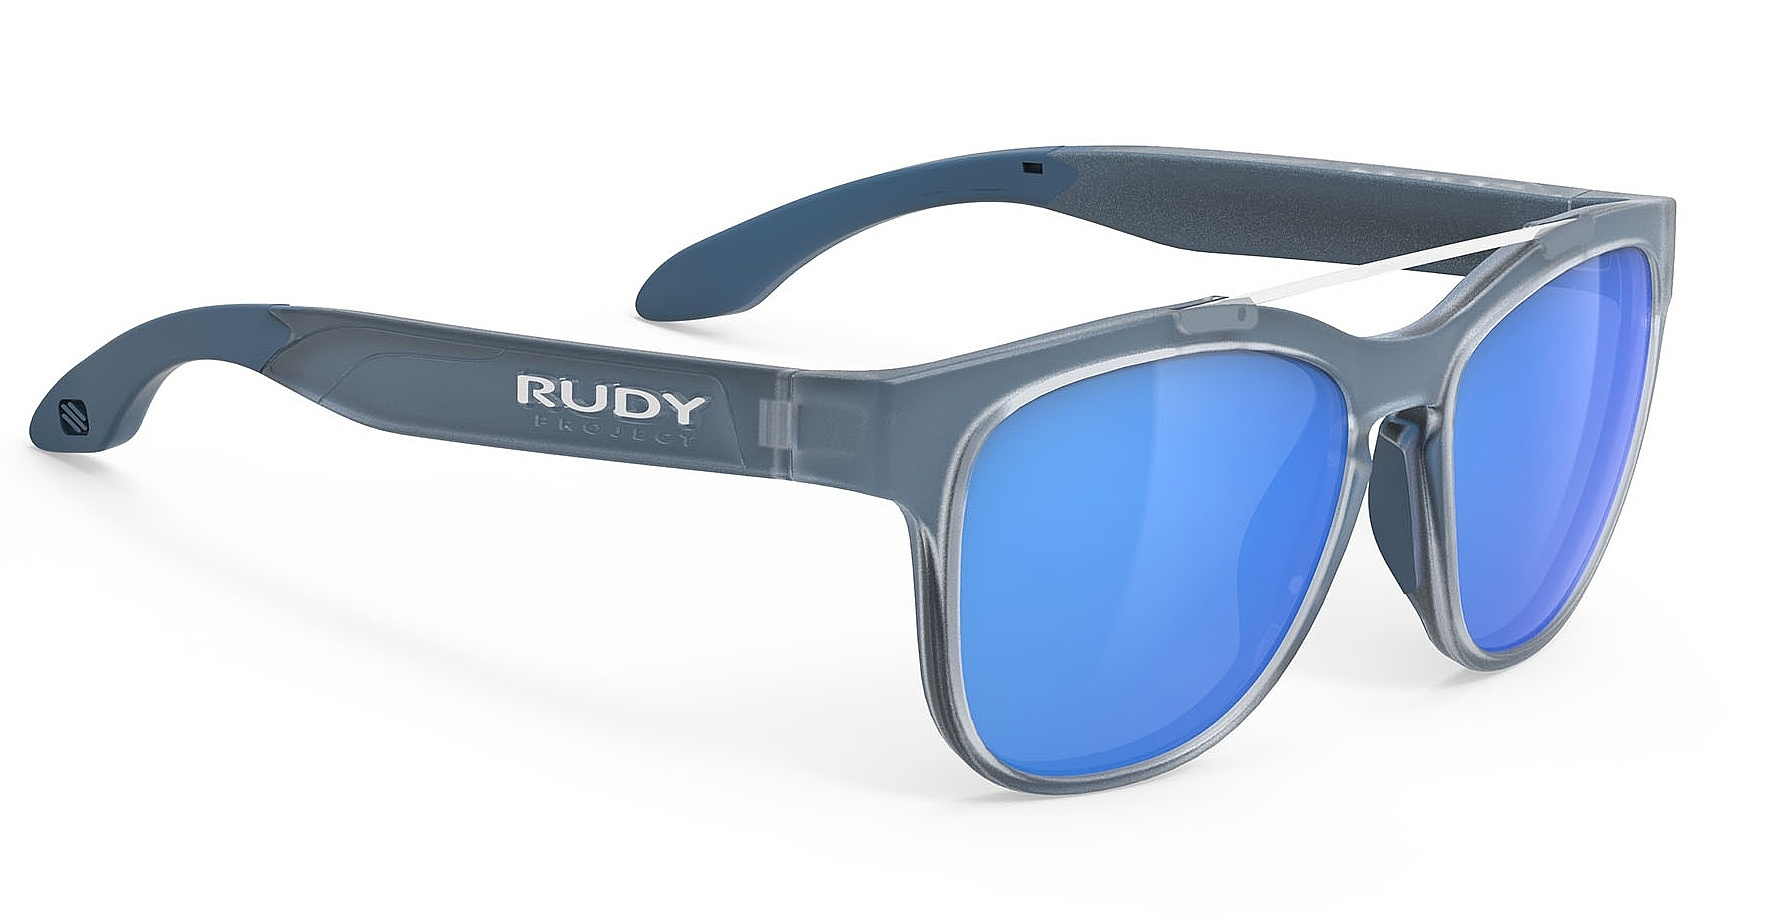 brýle Rudy Project Spinair 59 - Ice Blue Metallic Matte/Multilaser Blue one size